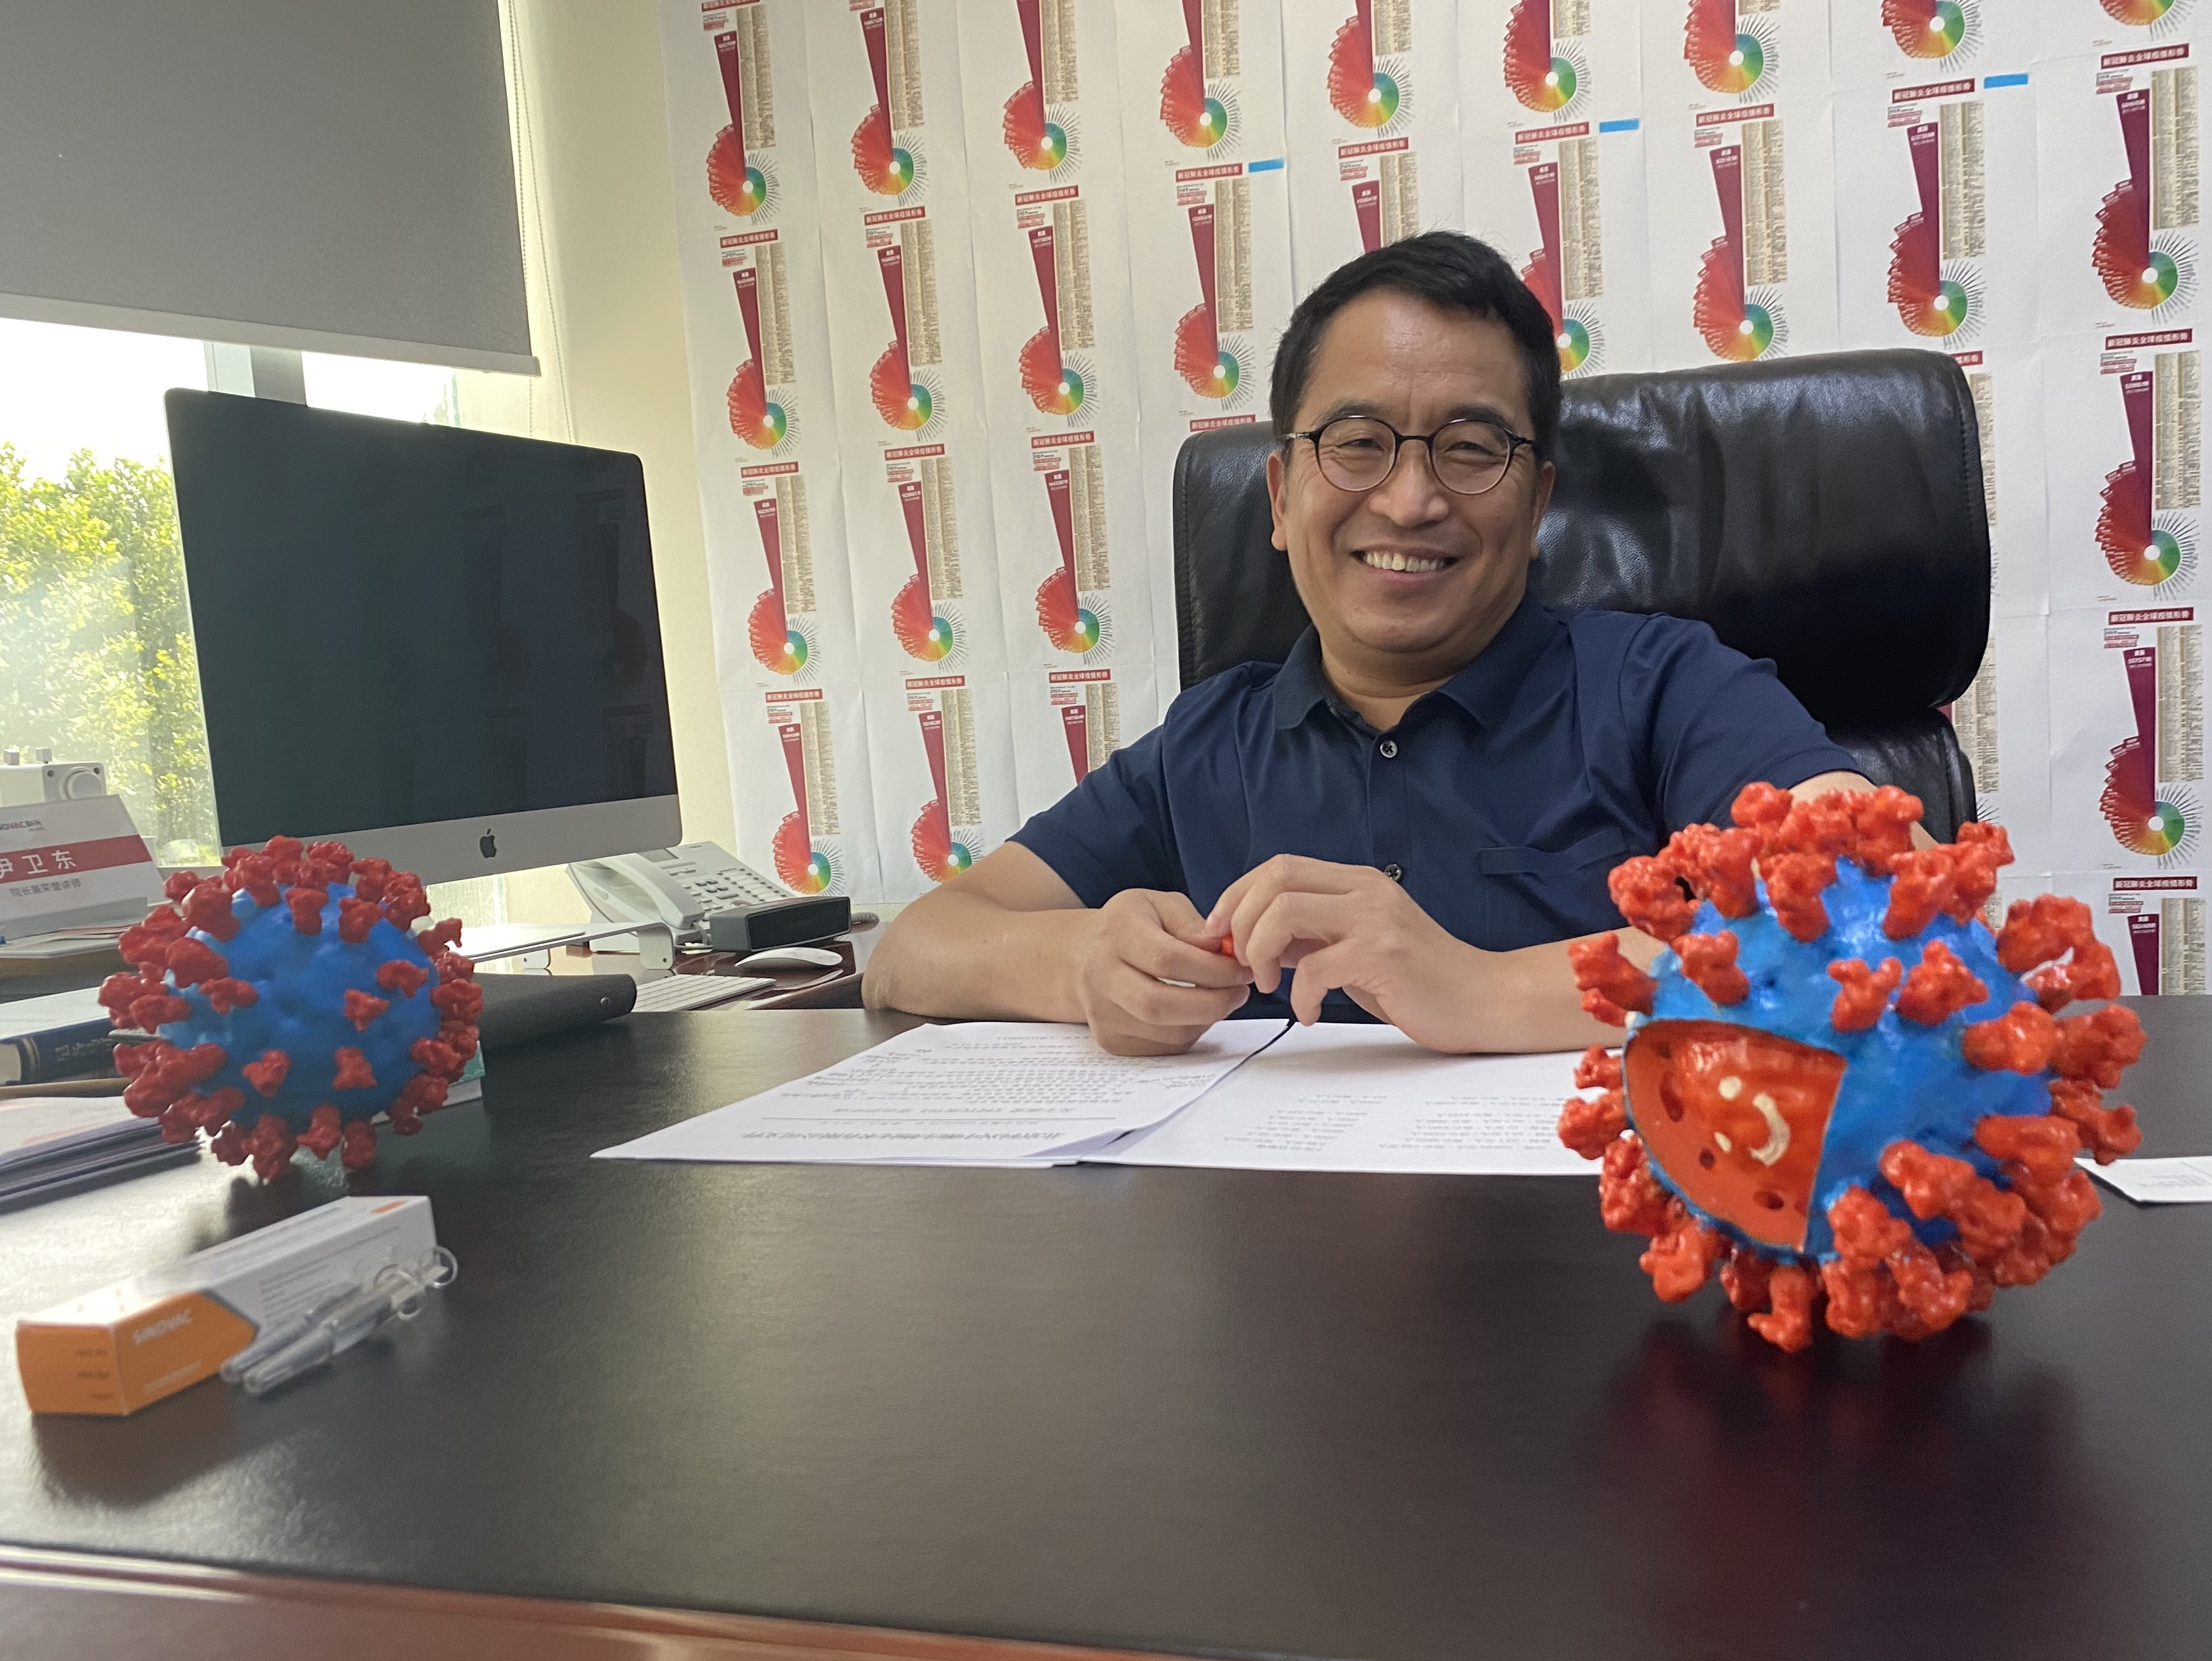 SinoVac CEO Yin Weidong in his Beijing office on Tuesday, July 21, 2020.